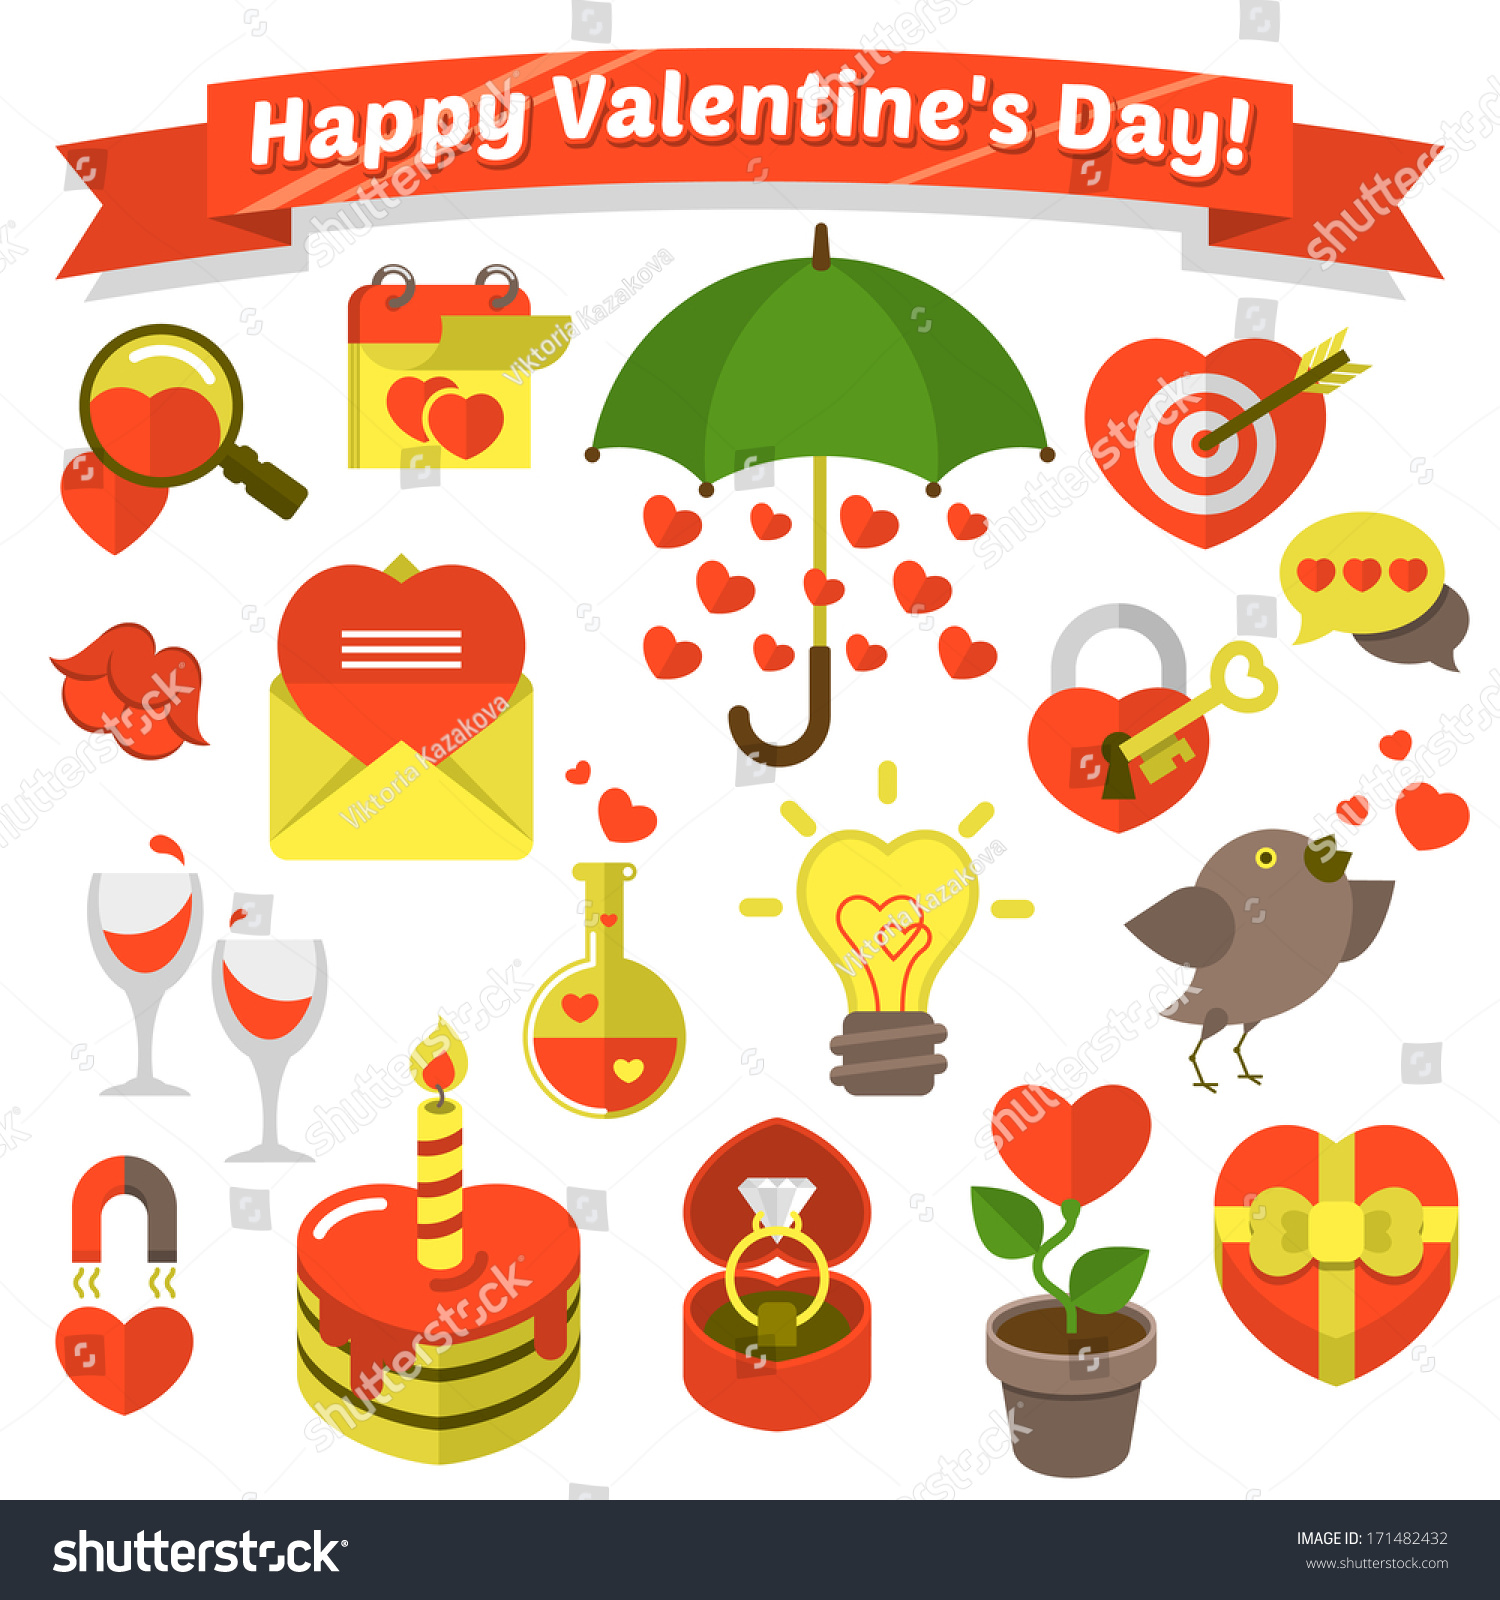 Set various flat love symbols valentines stock vector 171482432 set of various flat love symbols for valentines day with greeting label buycottarizona Gallery